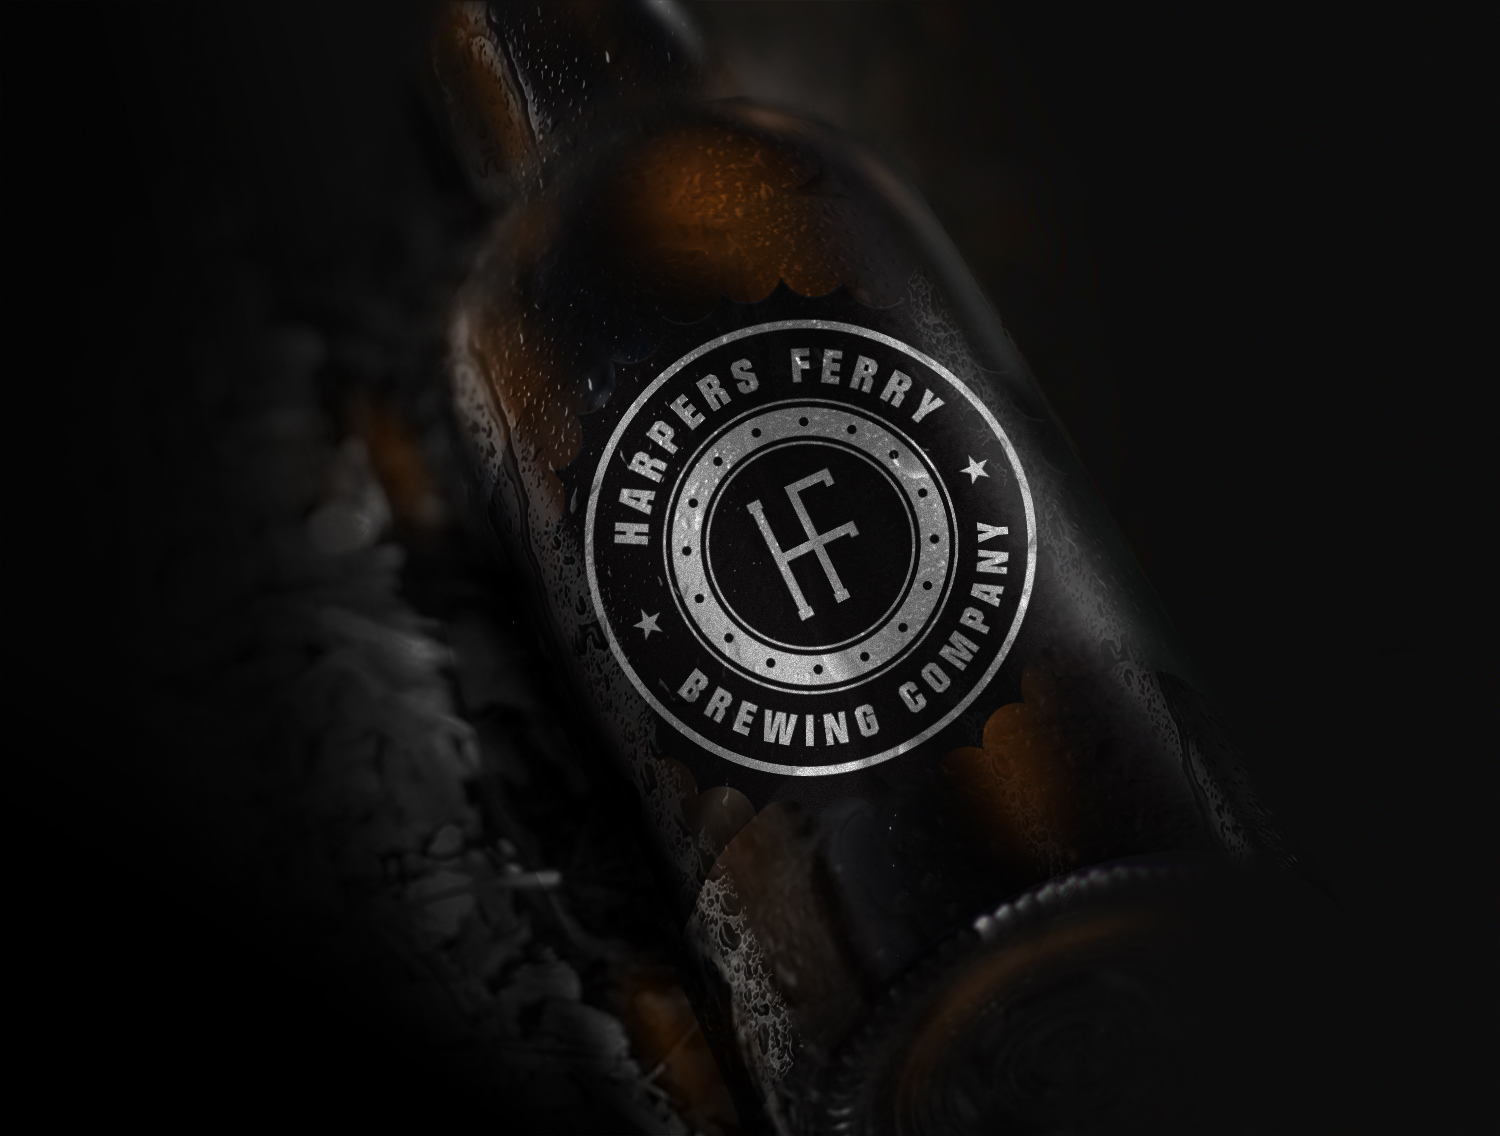 Logo Design by Vivek Das - Entry No. 118 in the Logo Design Contest Unique Logo Design Wanted for Harpers ferry brewing company.